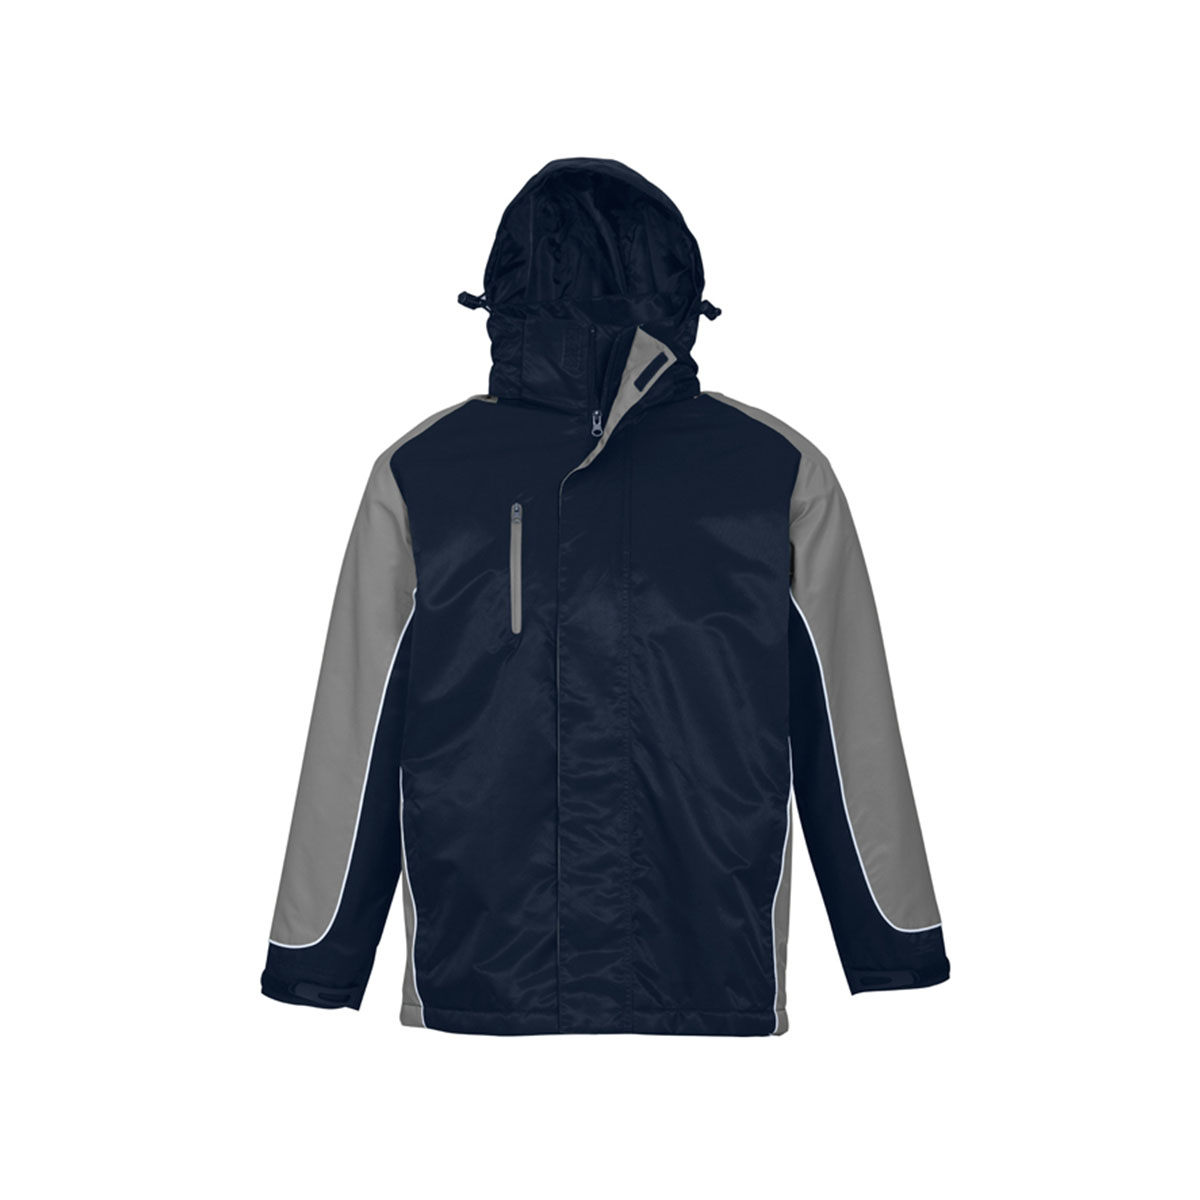 Unisex Nitro Jacket-Navy / Grey / White